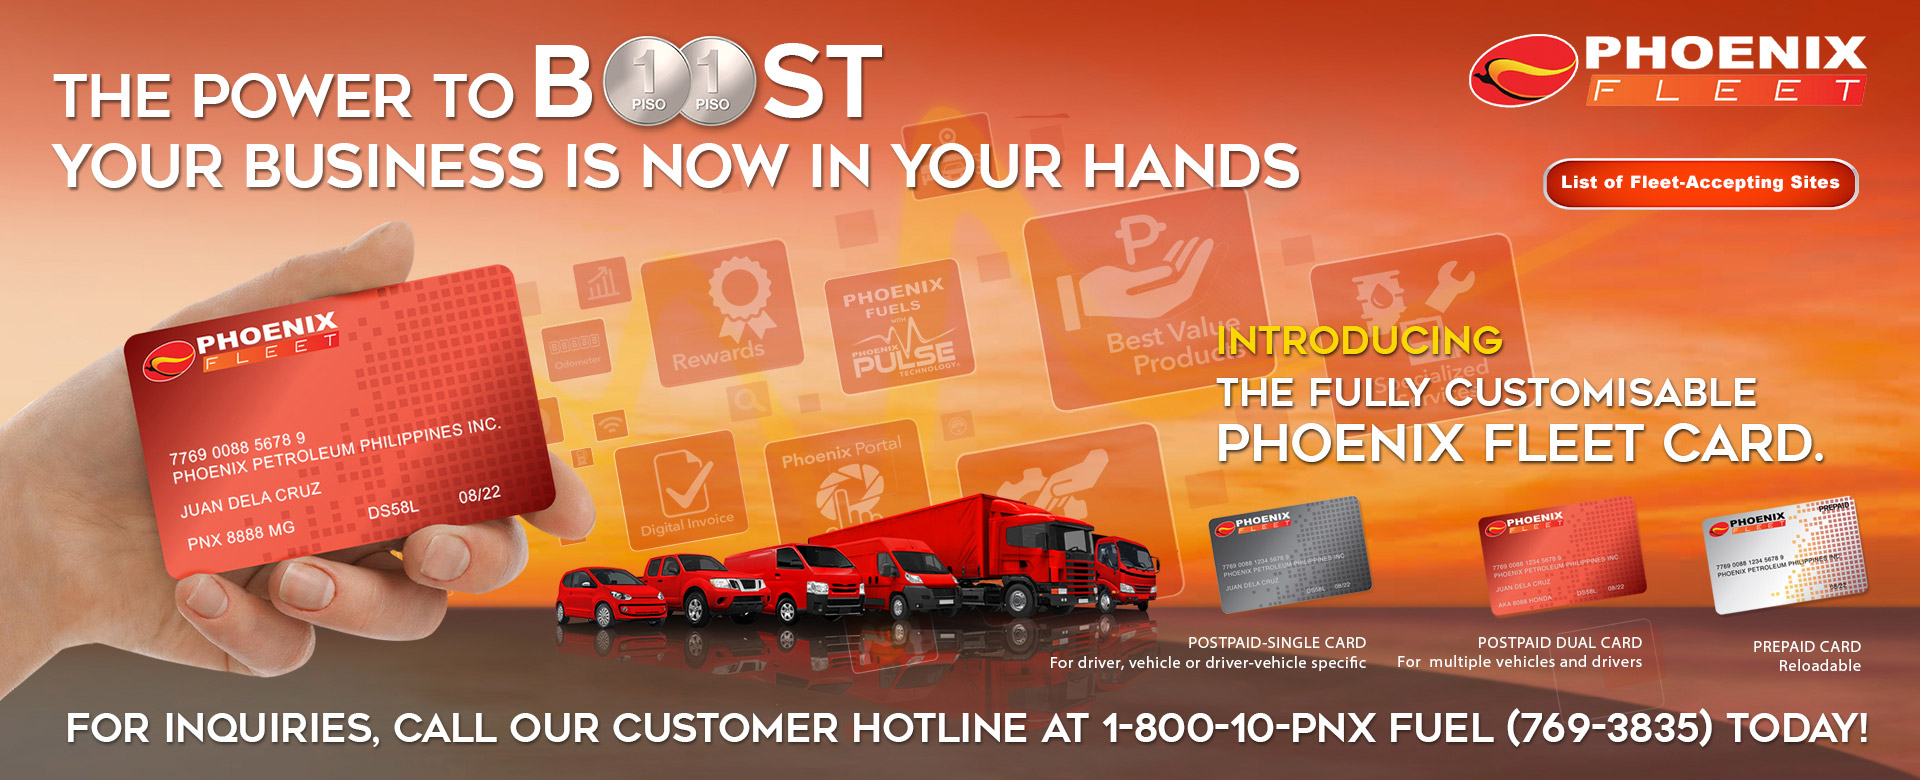 The Power to Boost Your Business - Phoenix Fleet Card